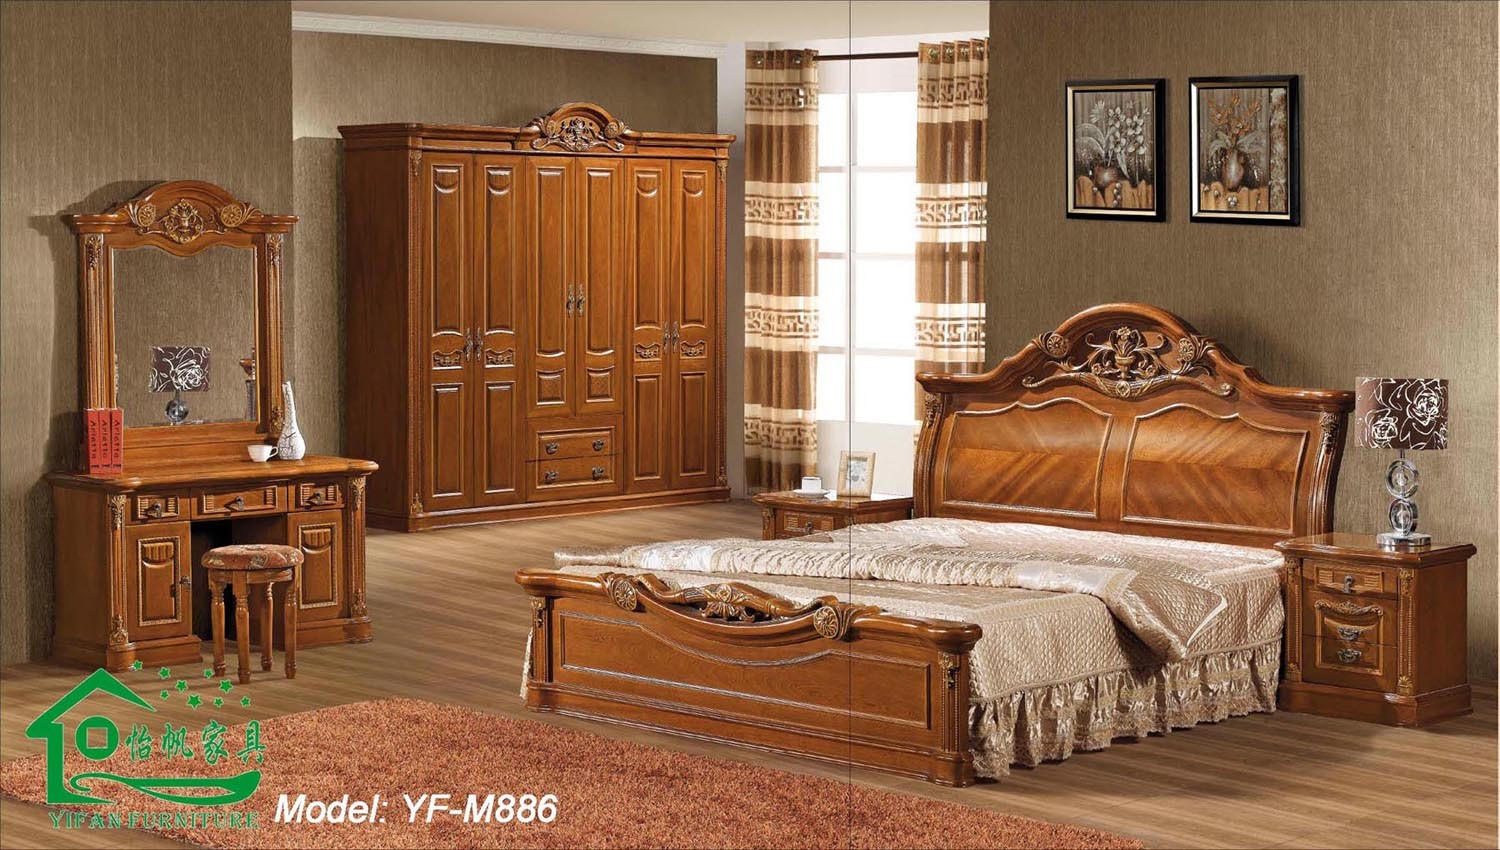 Oak Wood Furniture Designs ~ Wooden bedroom furniture at the galleria